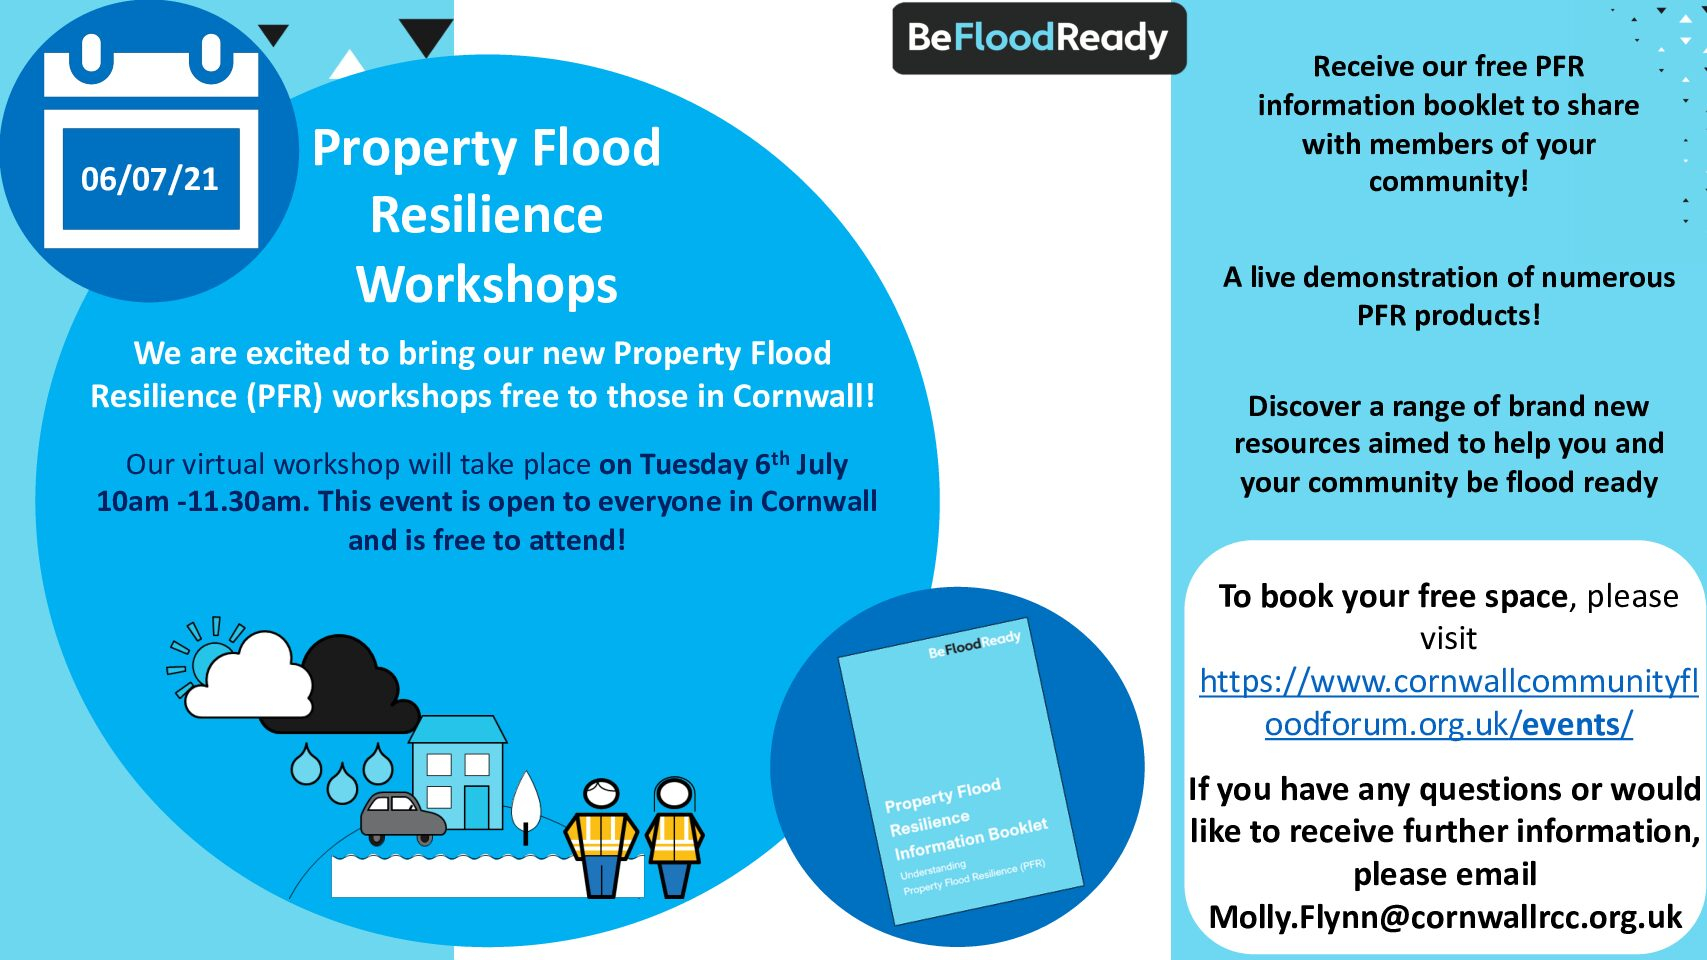 Virtual event: An introduction to Property Flood Resilience (PFR) workshop on Tuesday 6th July 10am